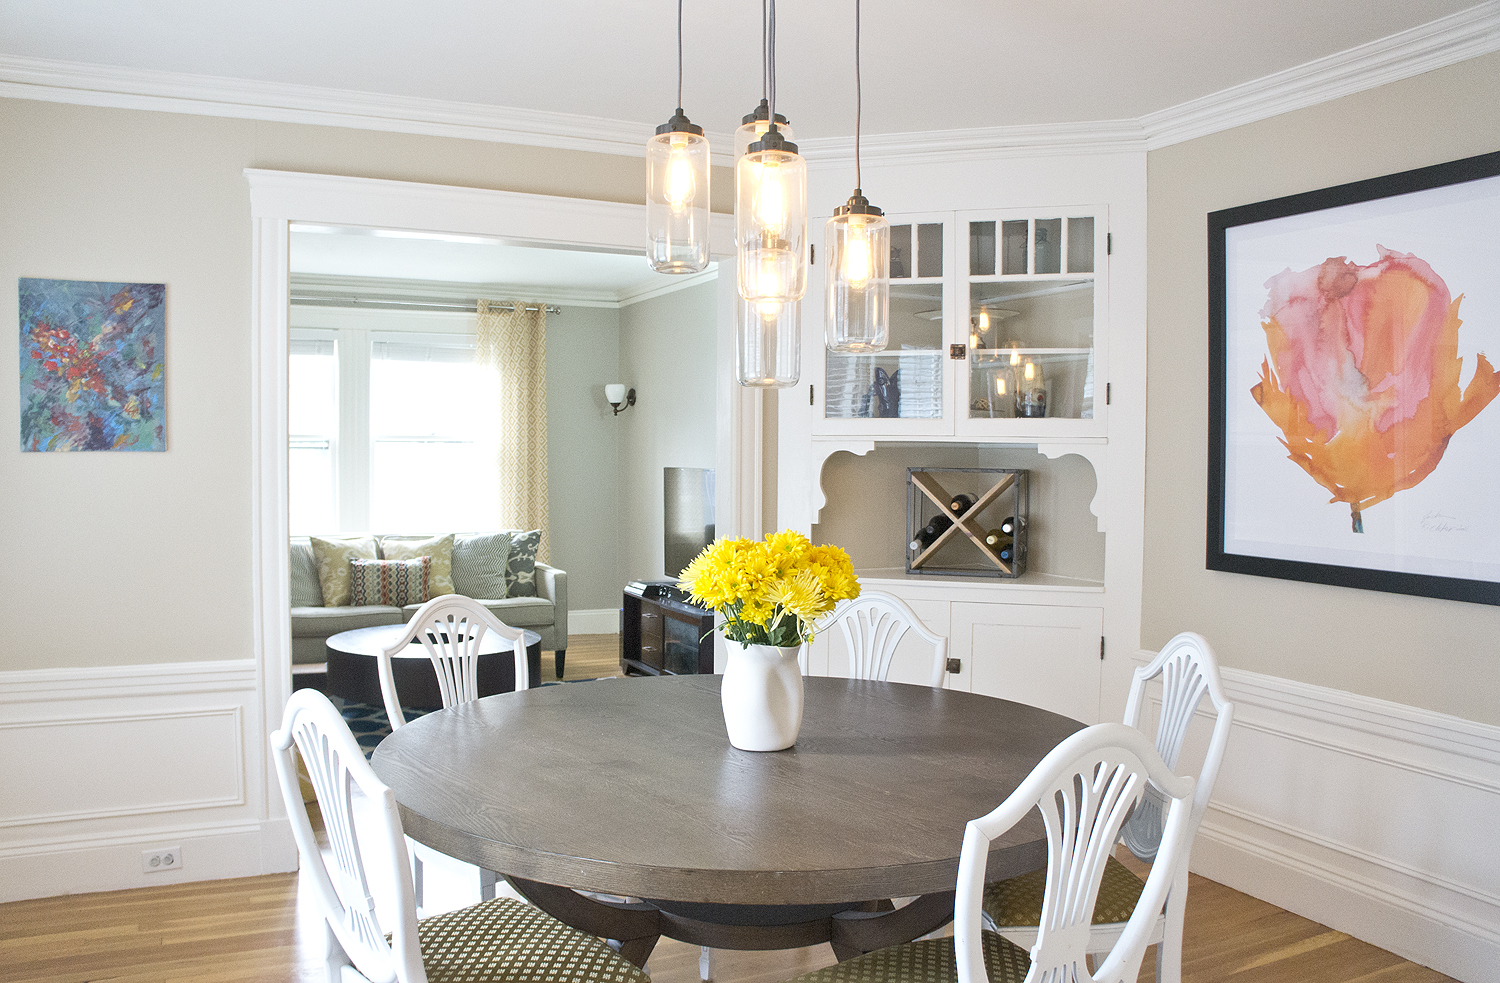 Vibrany Way Interiors Dining room via Year of Serendipity